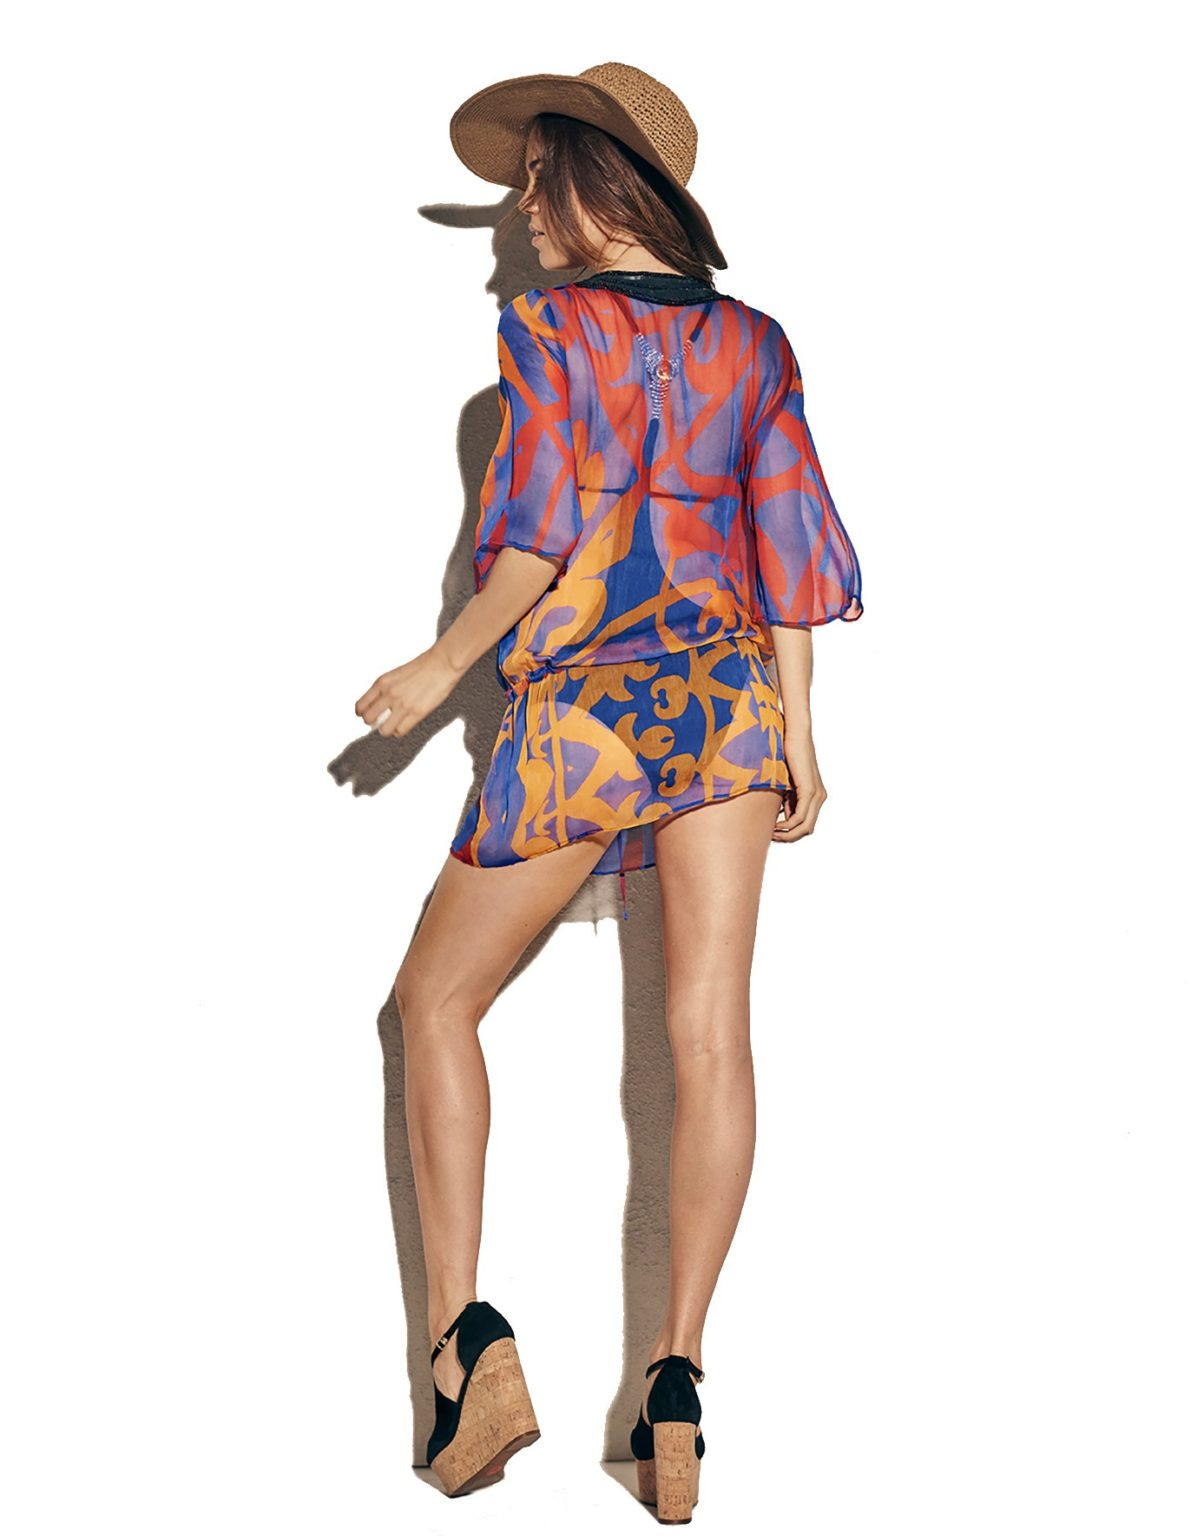 Fashion tunic from Miss Tunica - Minoue Twilight Yonder